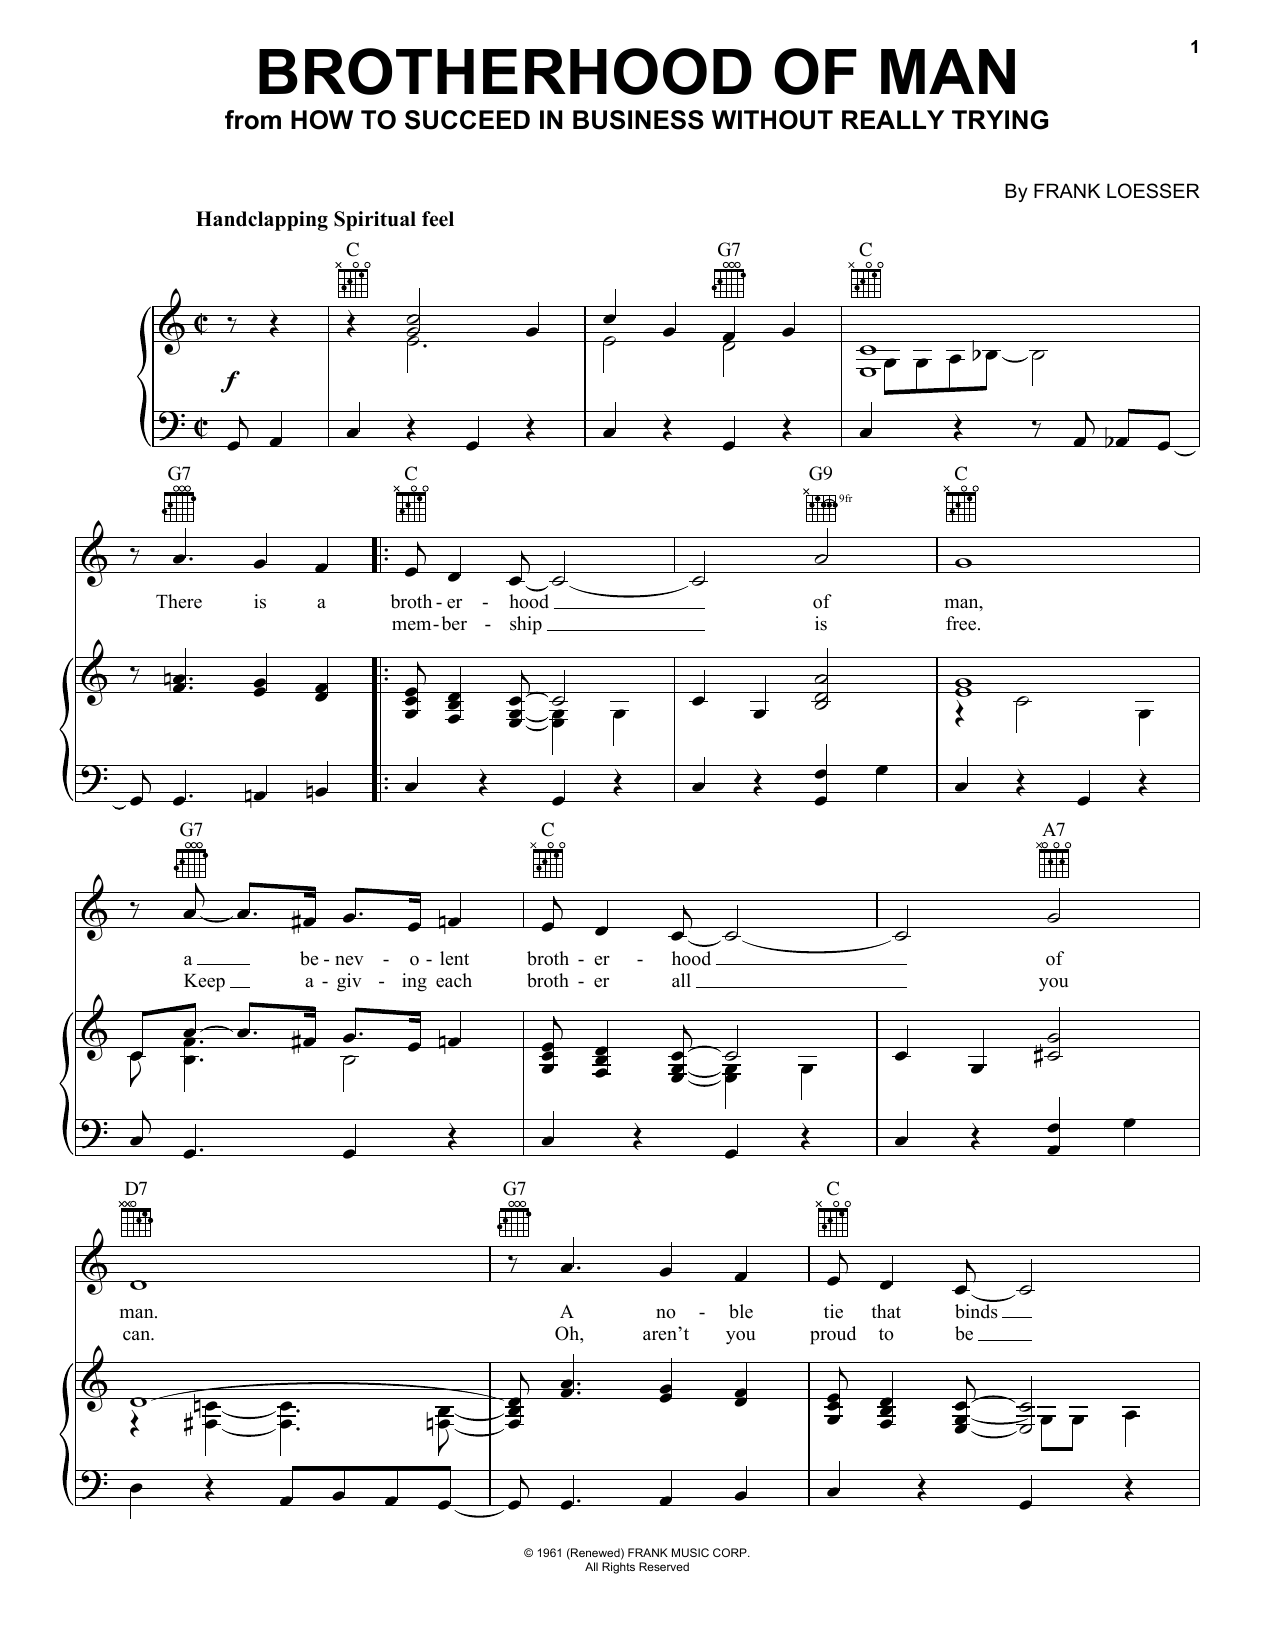 Frank Loesser Brotherhood Of Man sheet music notes and chords. Download Printable PDF.